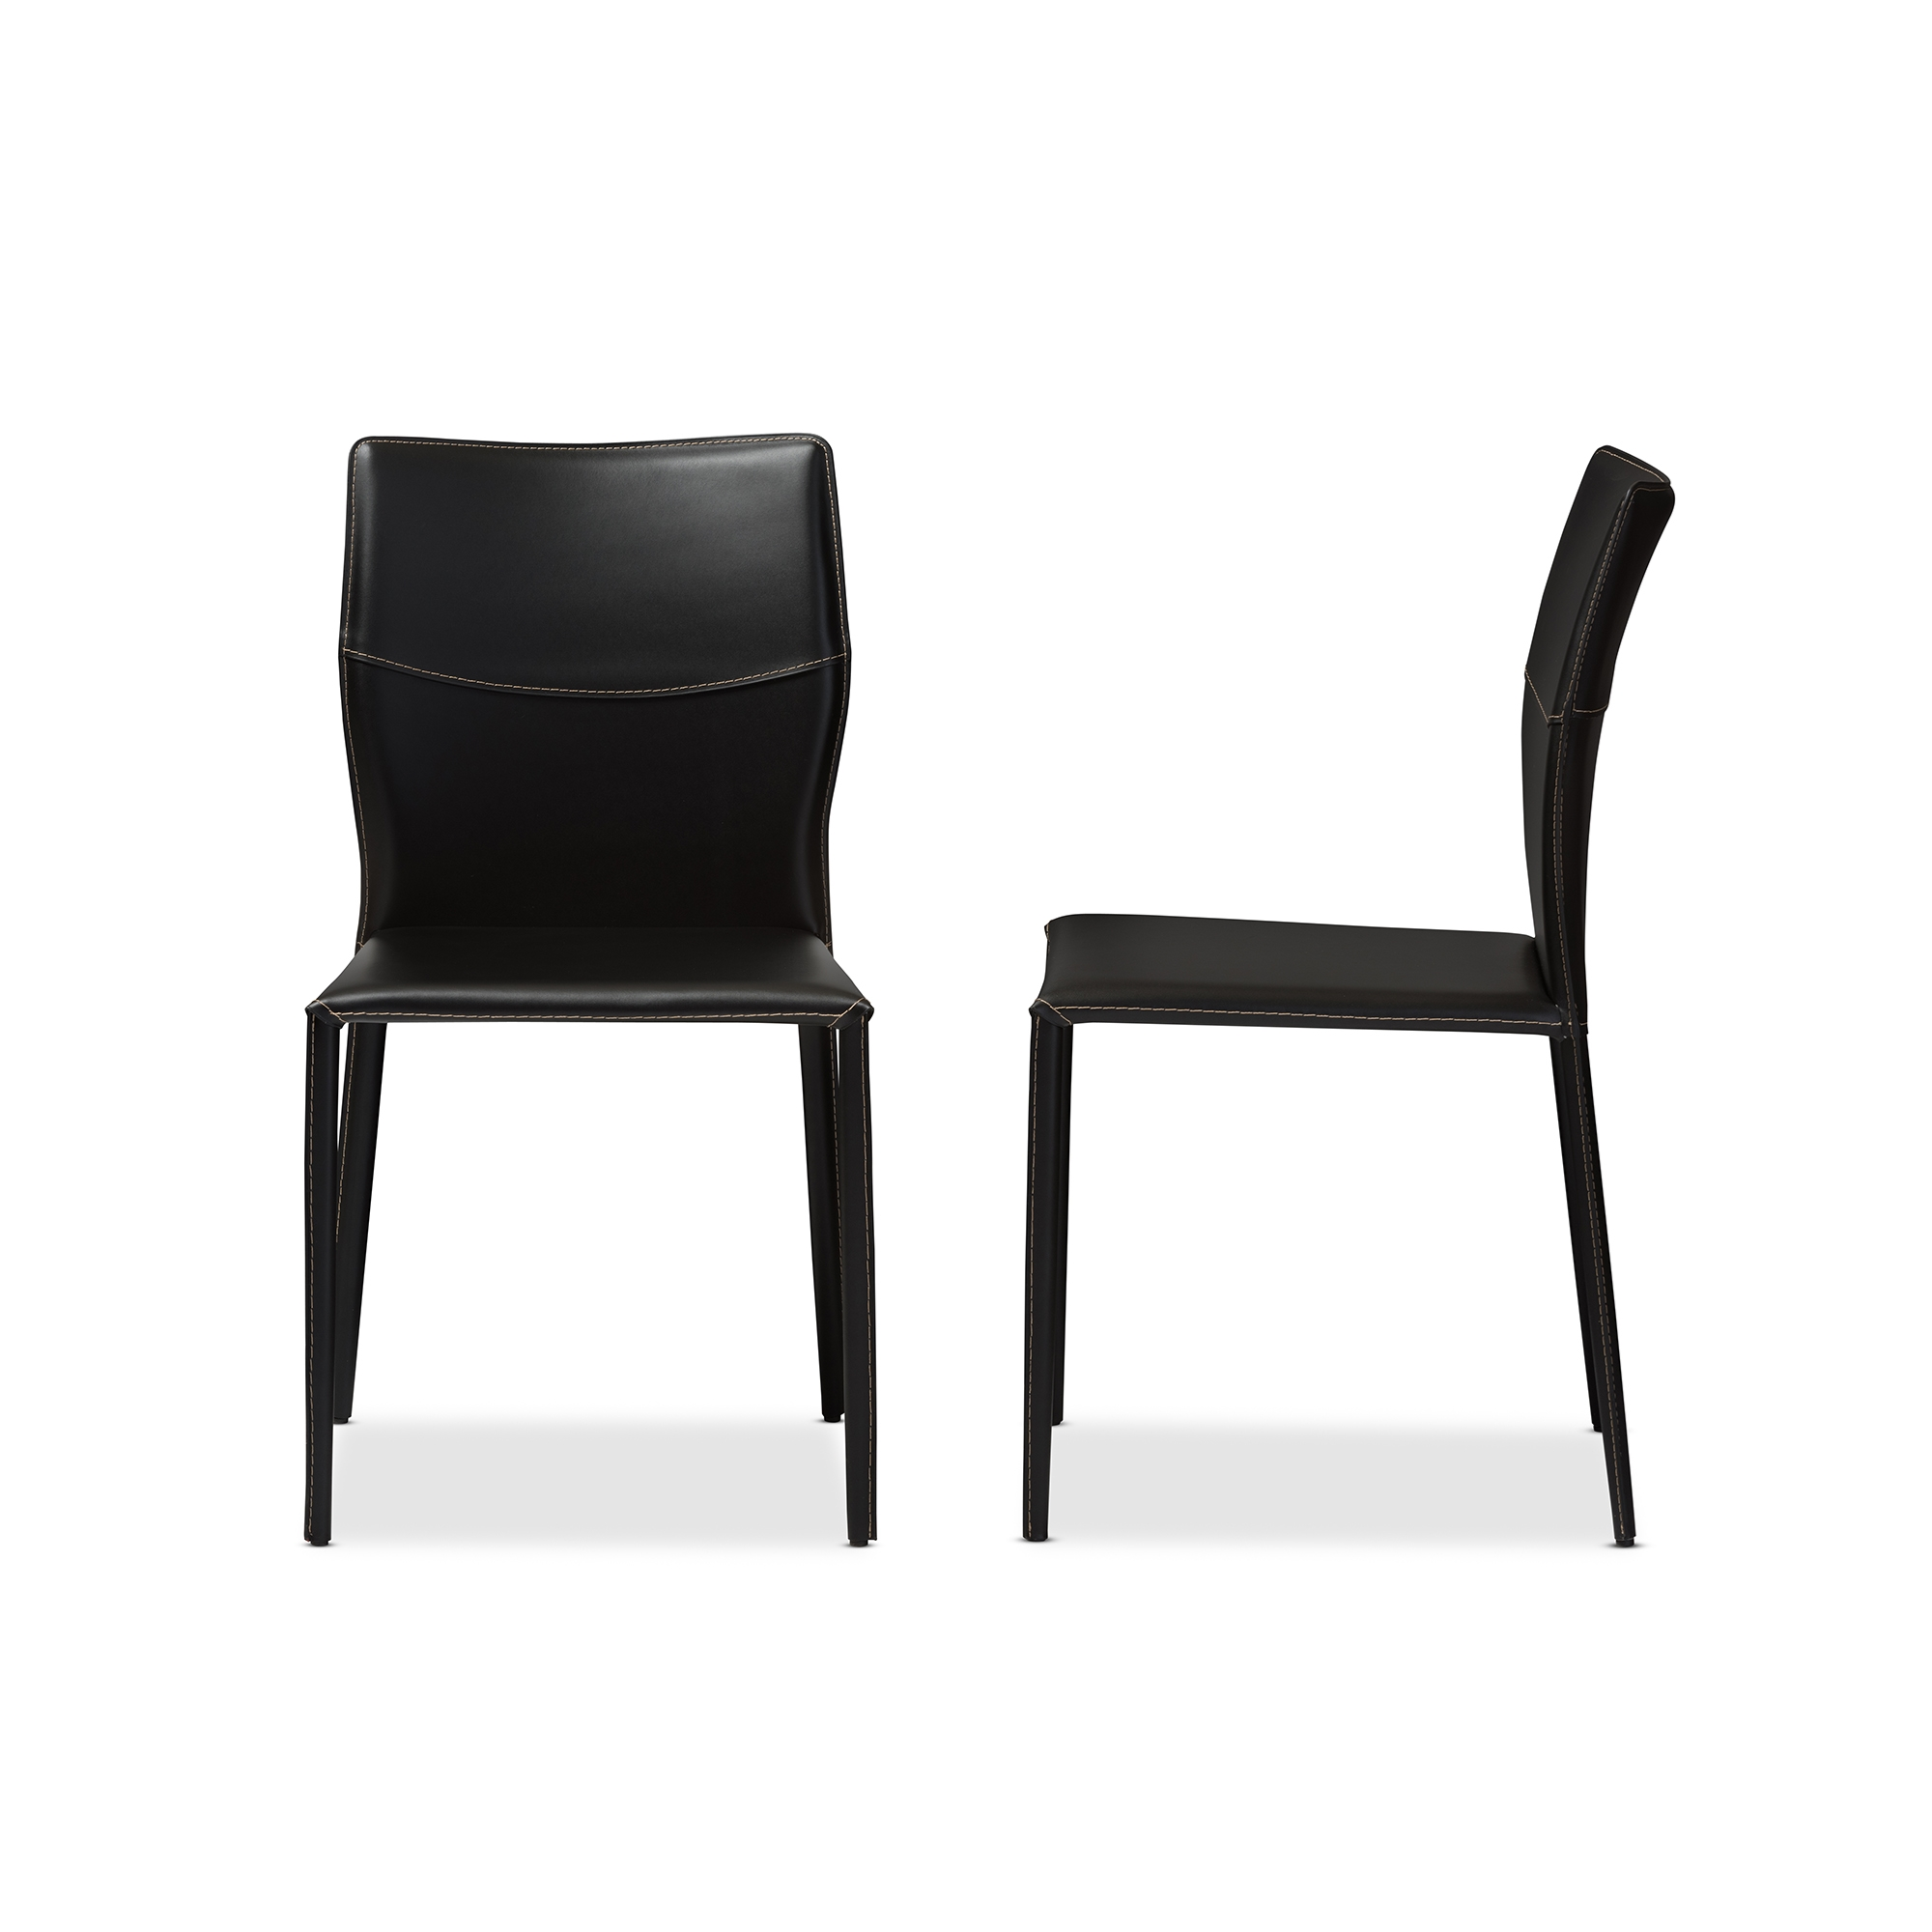 Baxton Studio Asper Modern and Contemporary Black Leather Upholstered Dining Chair - ALC-1503- ...  sc 1 st  Wholesale Interiors & Wholesale Dining Chairs | Wholesale Dining Room Furniture ...